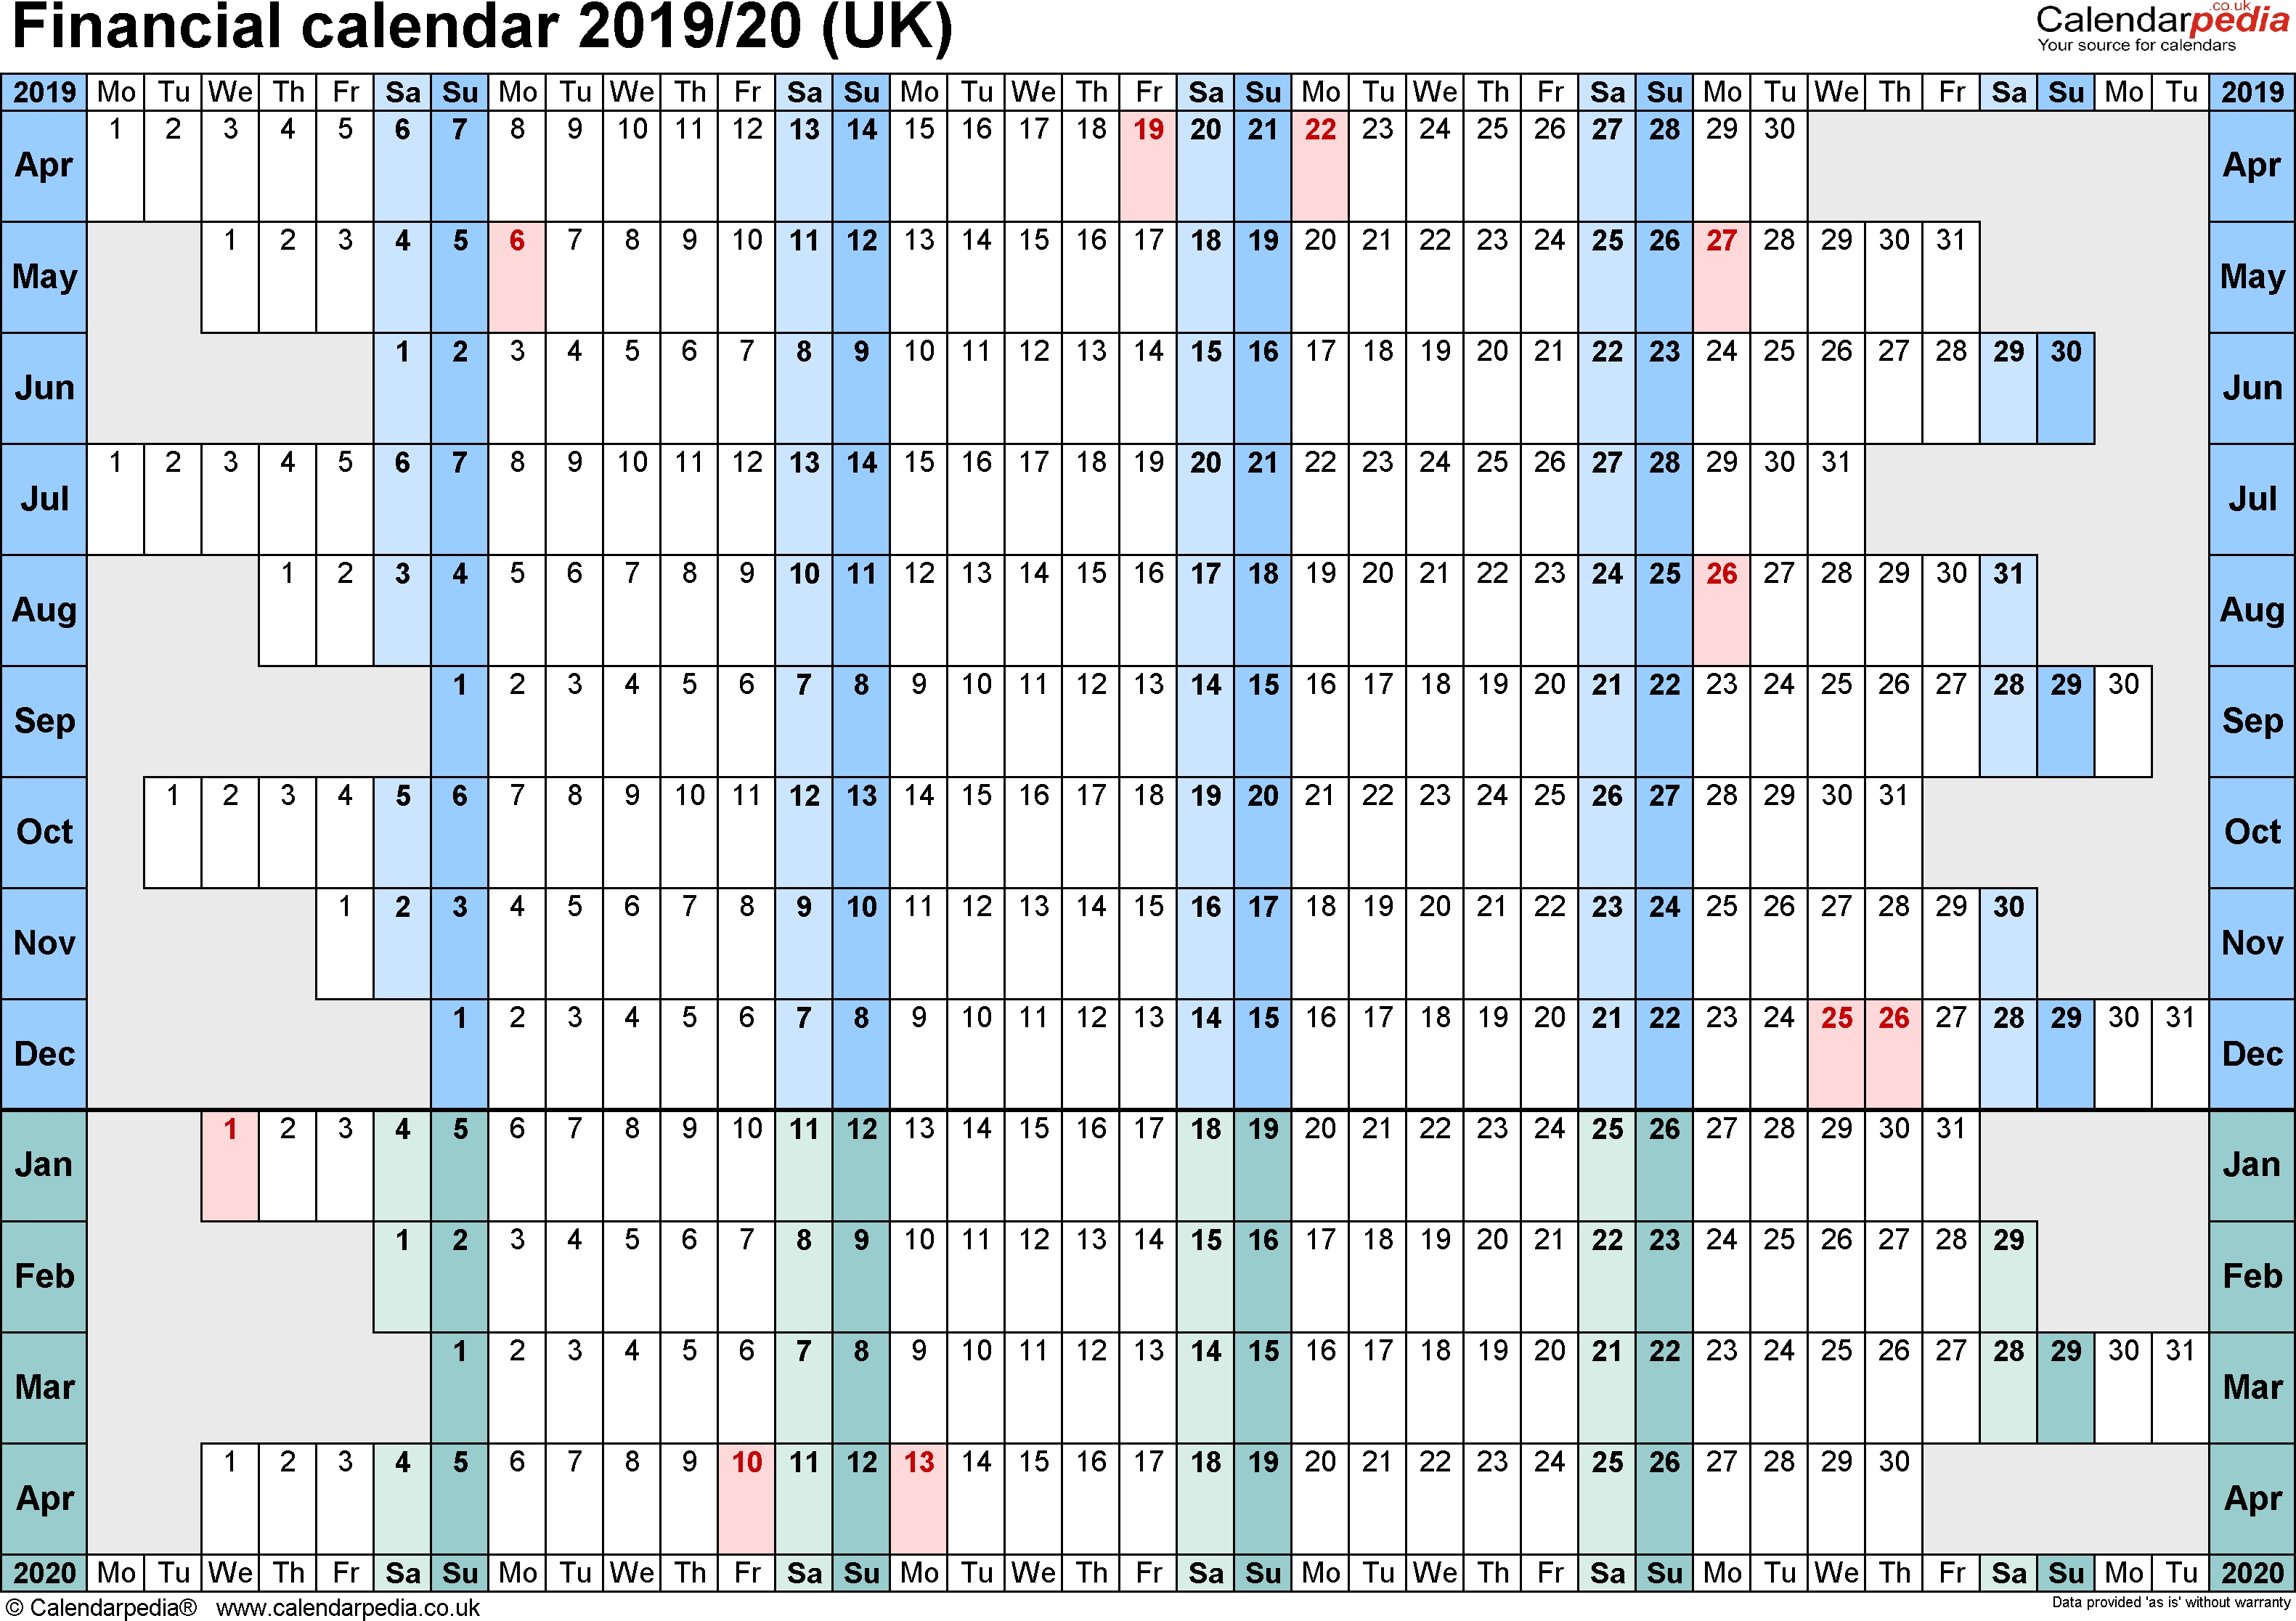 Financial Calendars 2019/20 (Uk) In Pdf Format regarding Financial Calendar 2019/2020 With Week Numbers